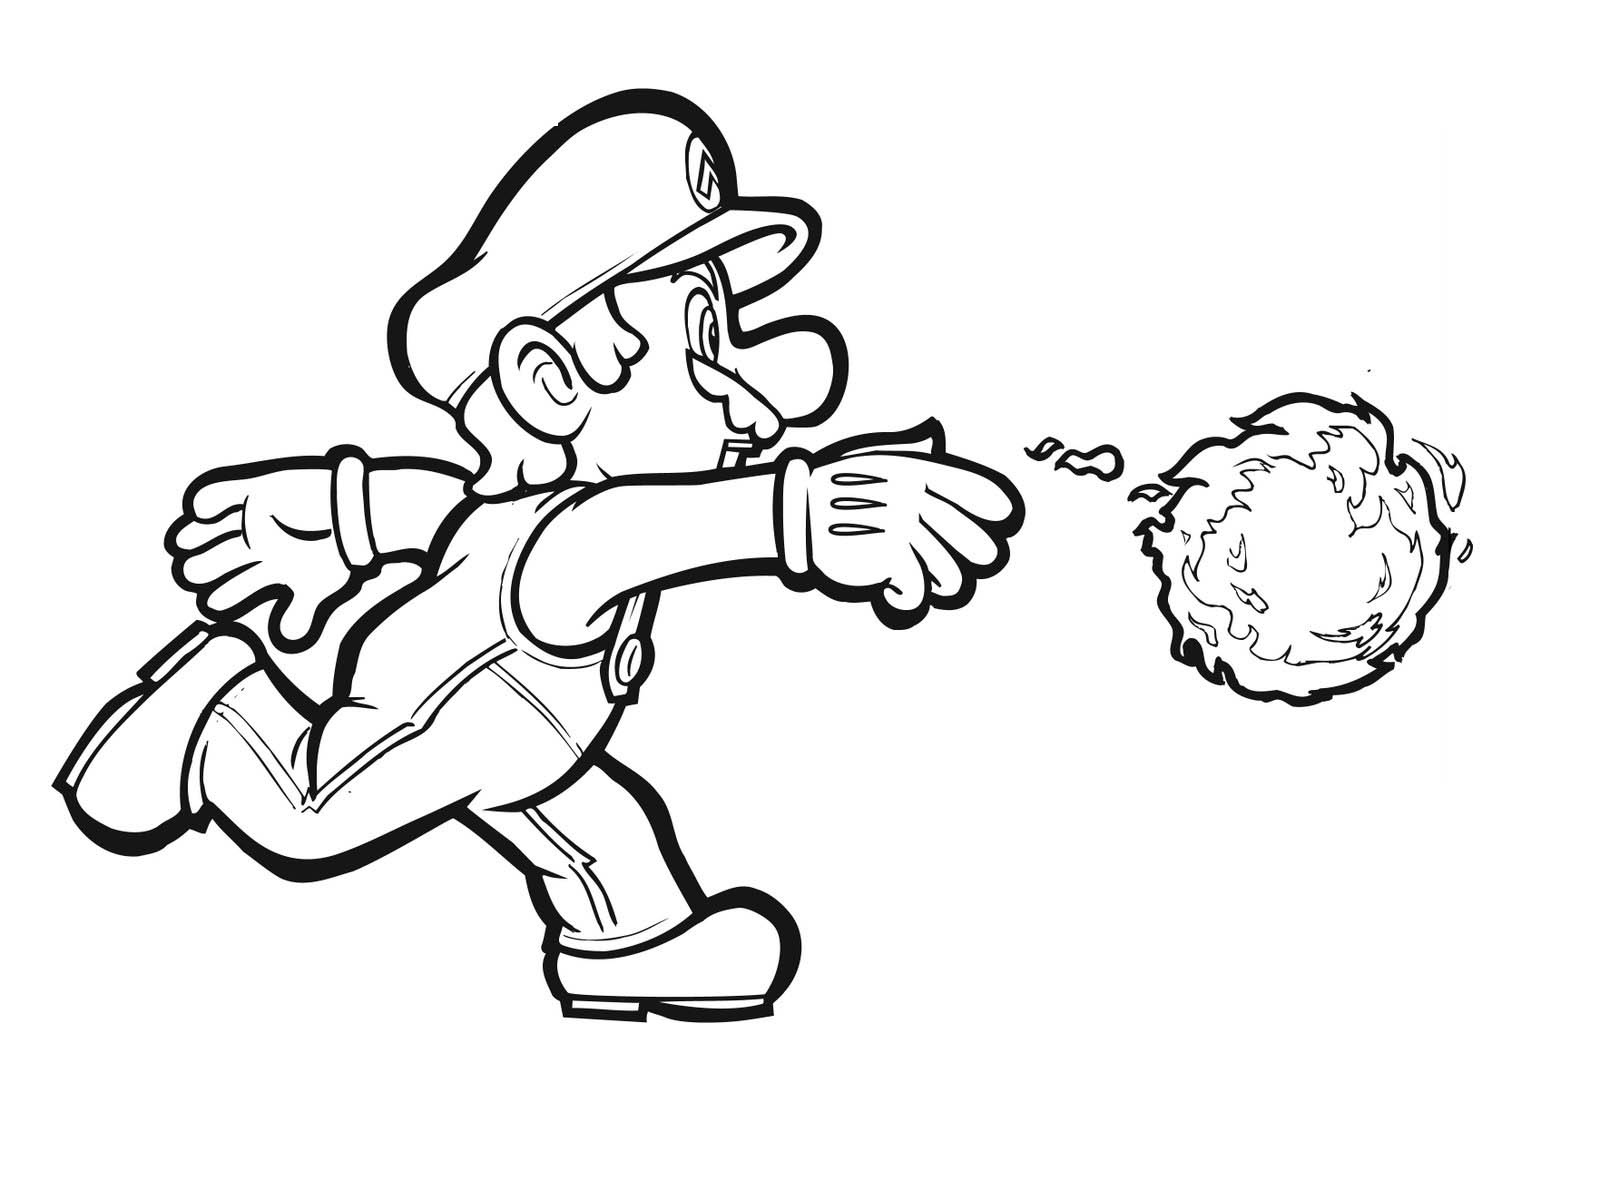 Mario coloring pictures to print